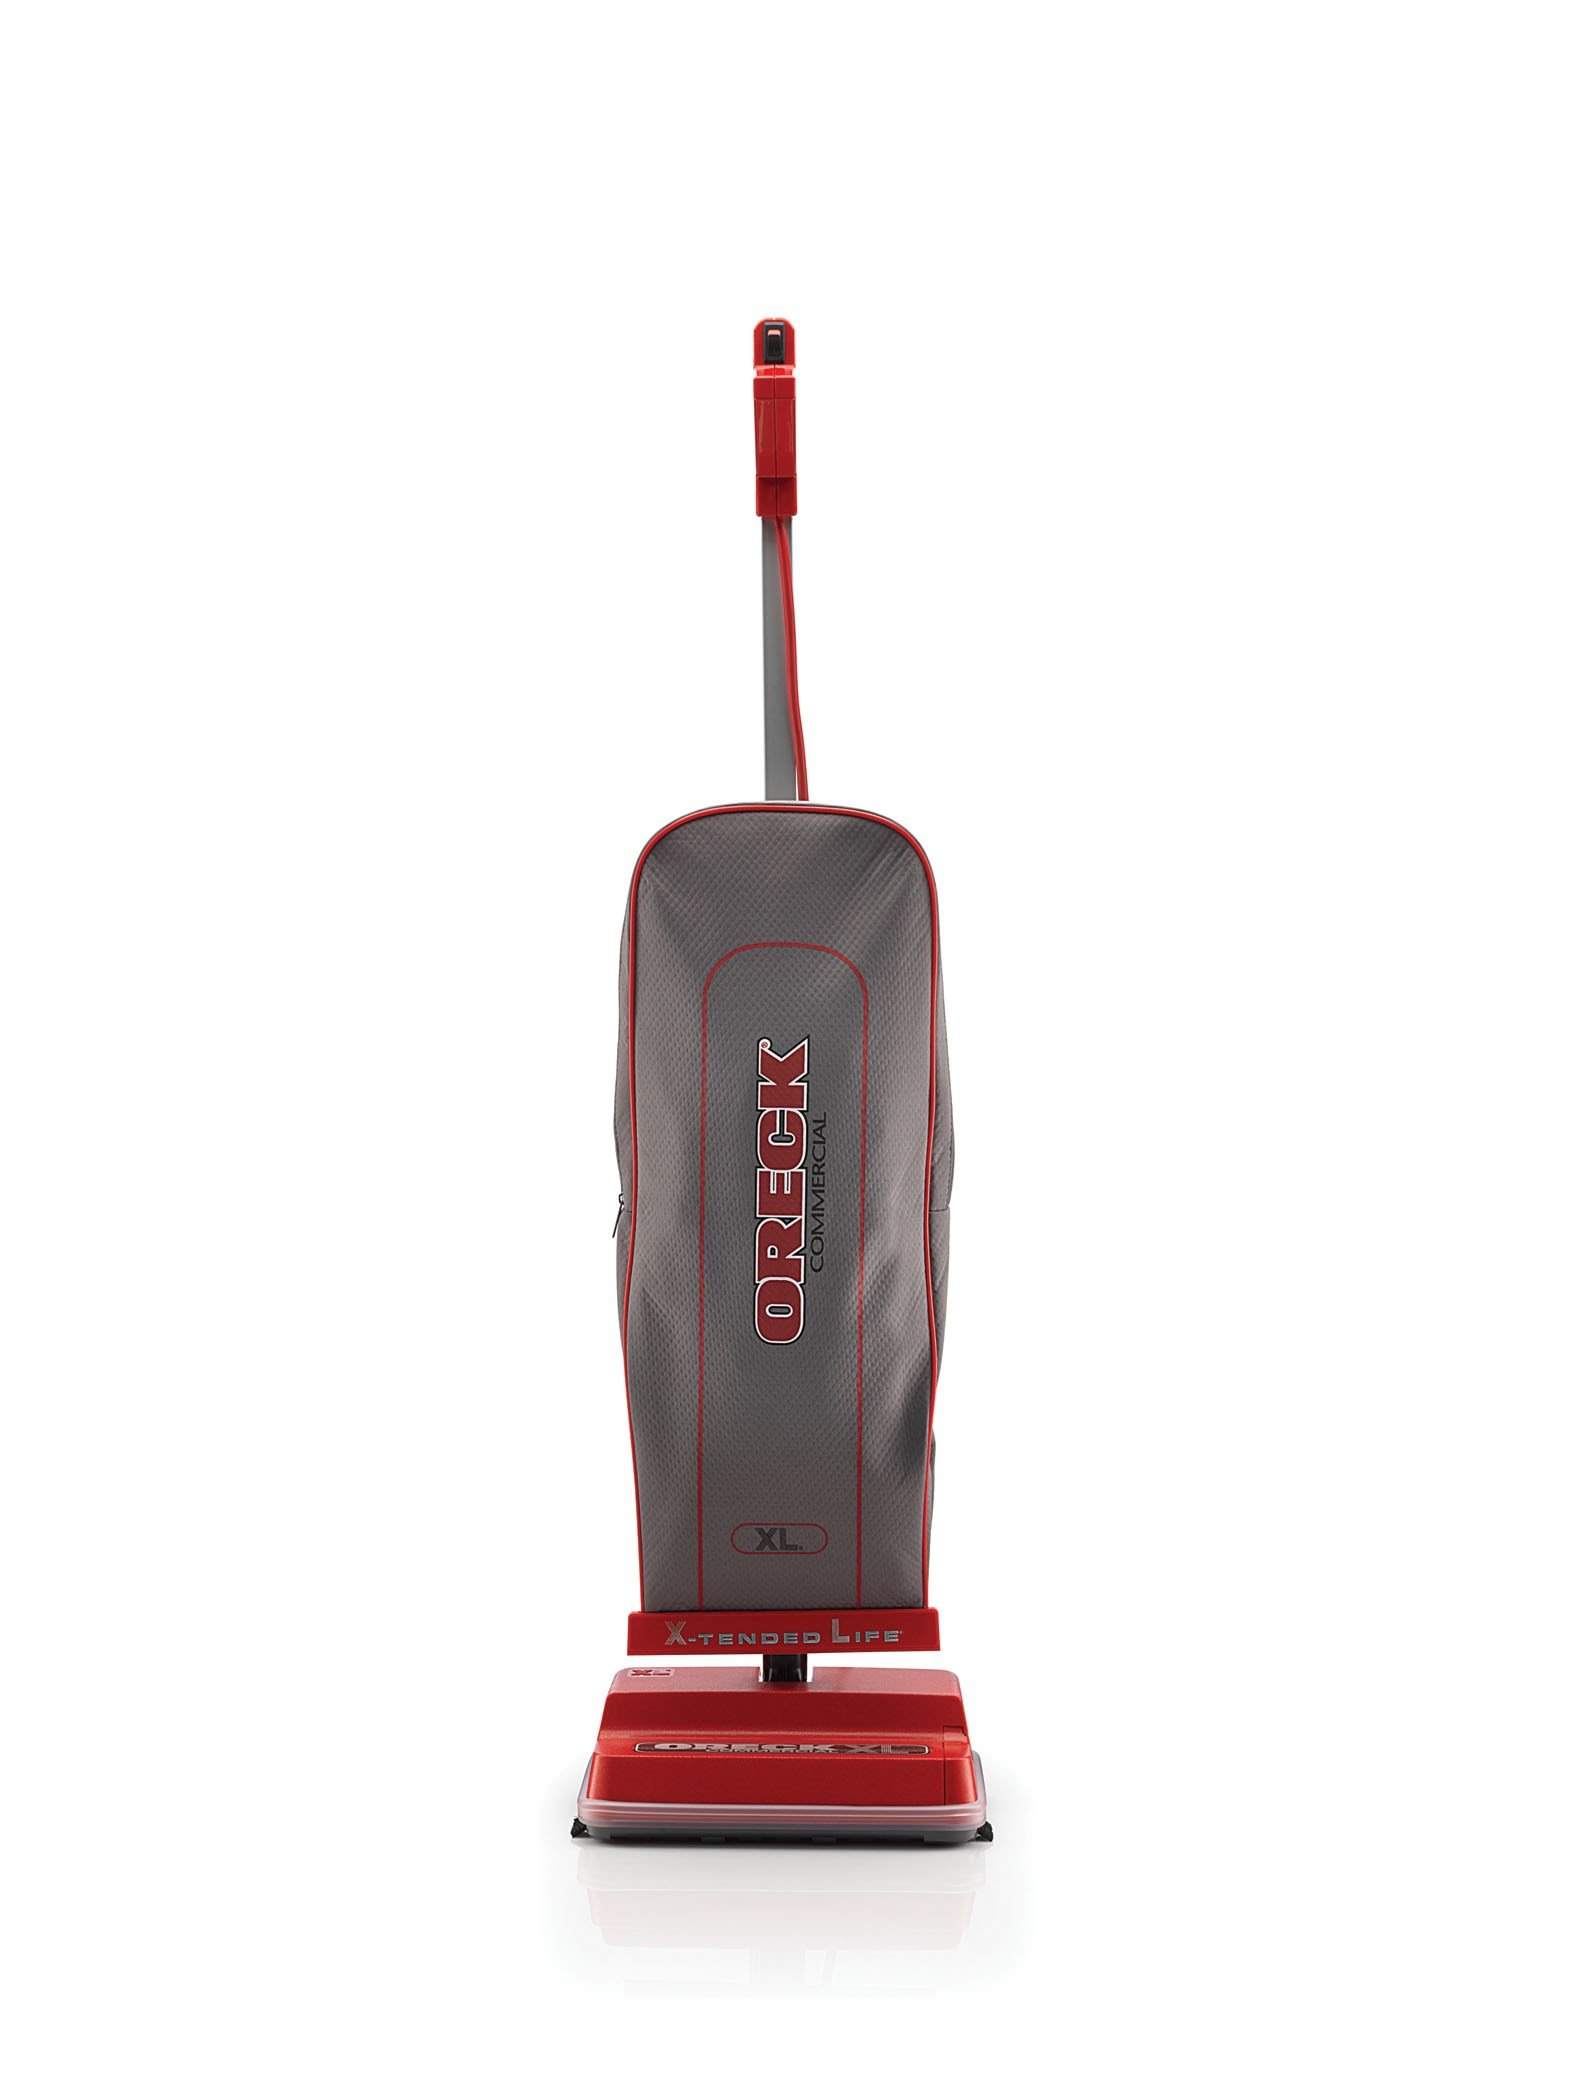 Oreck Commercial Upright Bagged Vacuum Cleaner, Lightweight, 40ft Power Cord, U2000R1, Grey/Red by Oreck Commercial